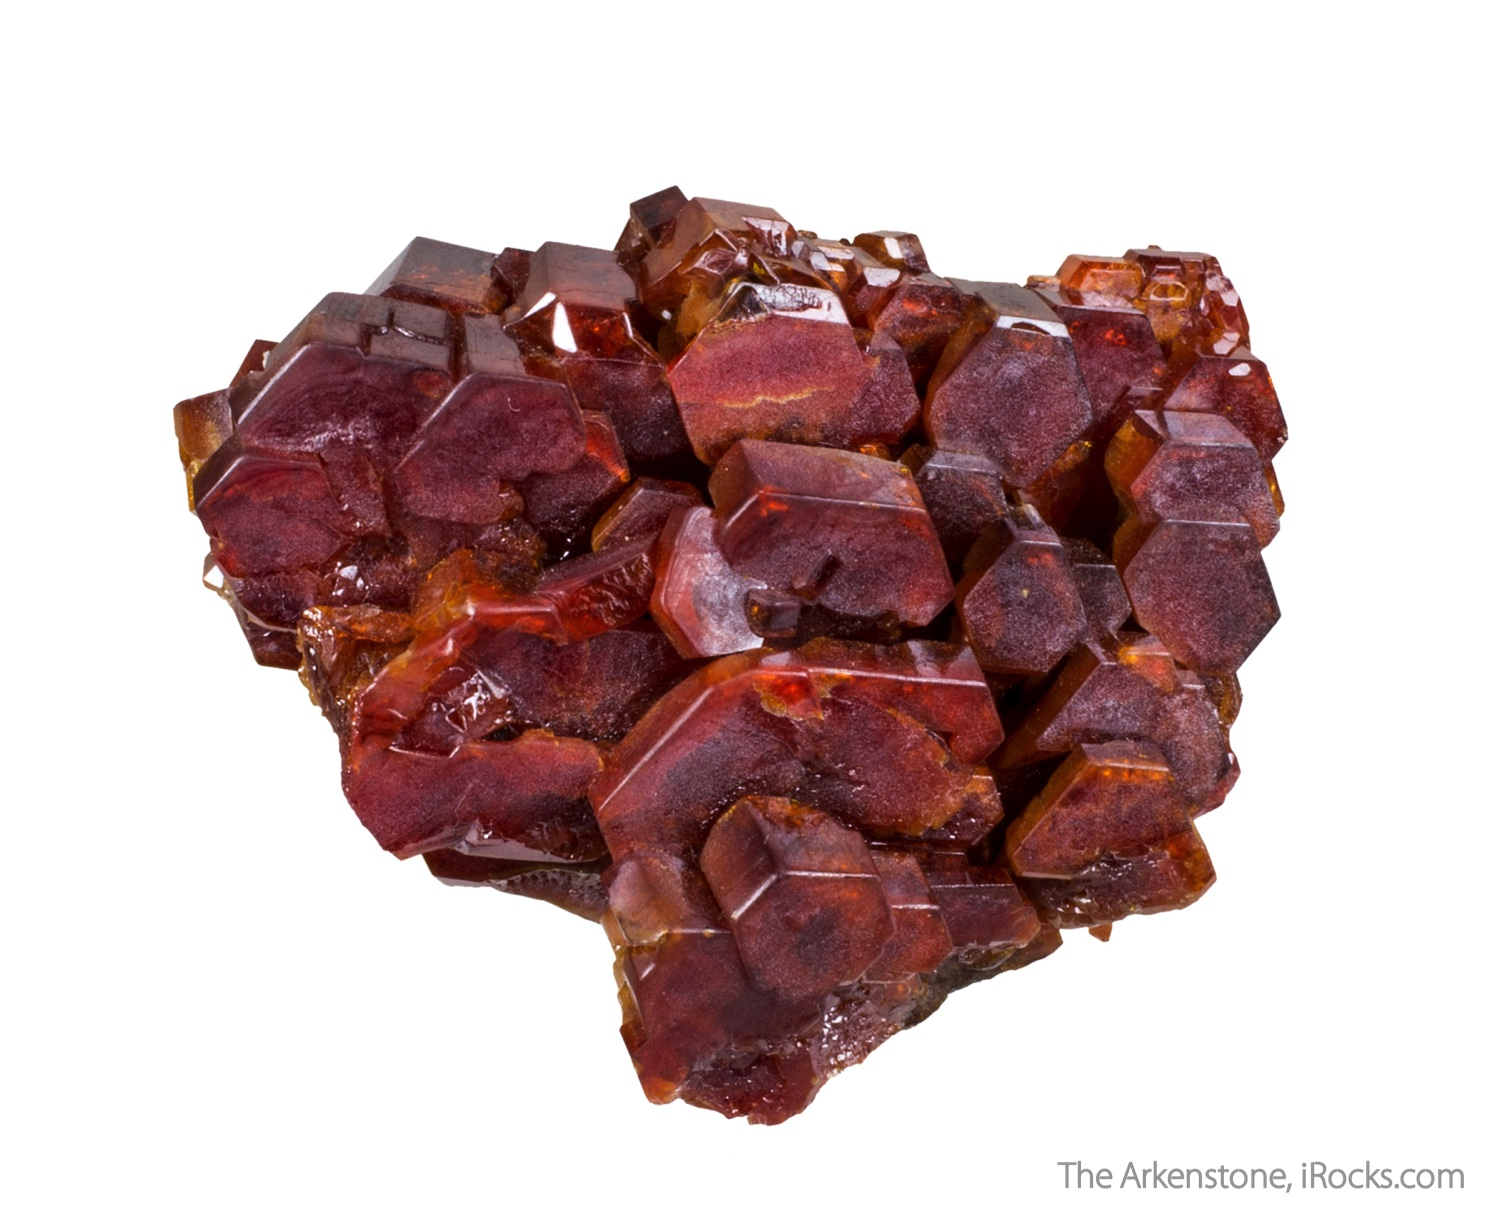 This unusual vanadinite specimen features robust crystals 2 2 cm